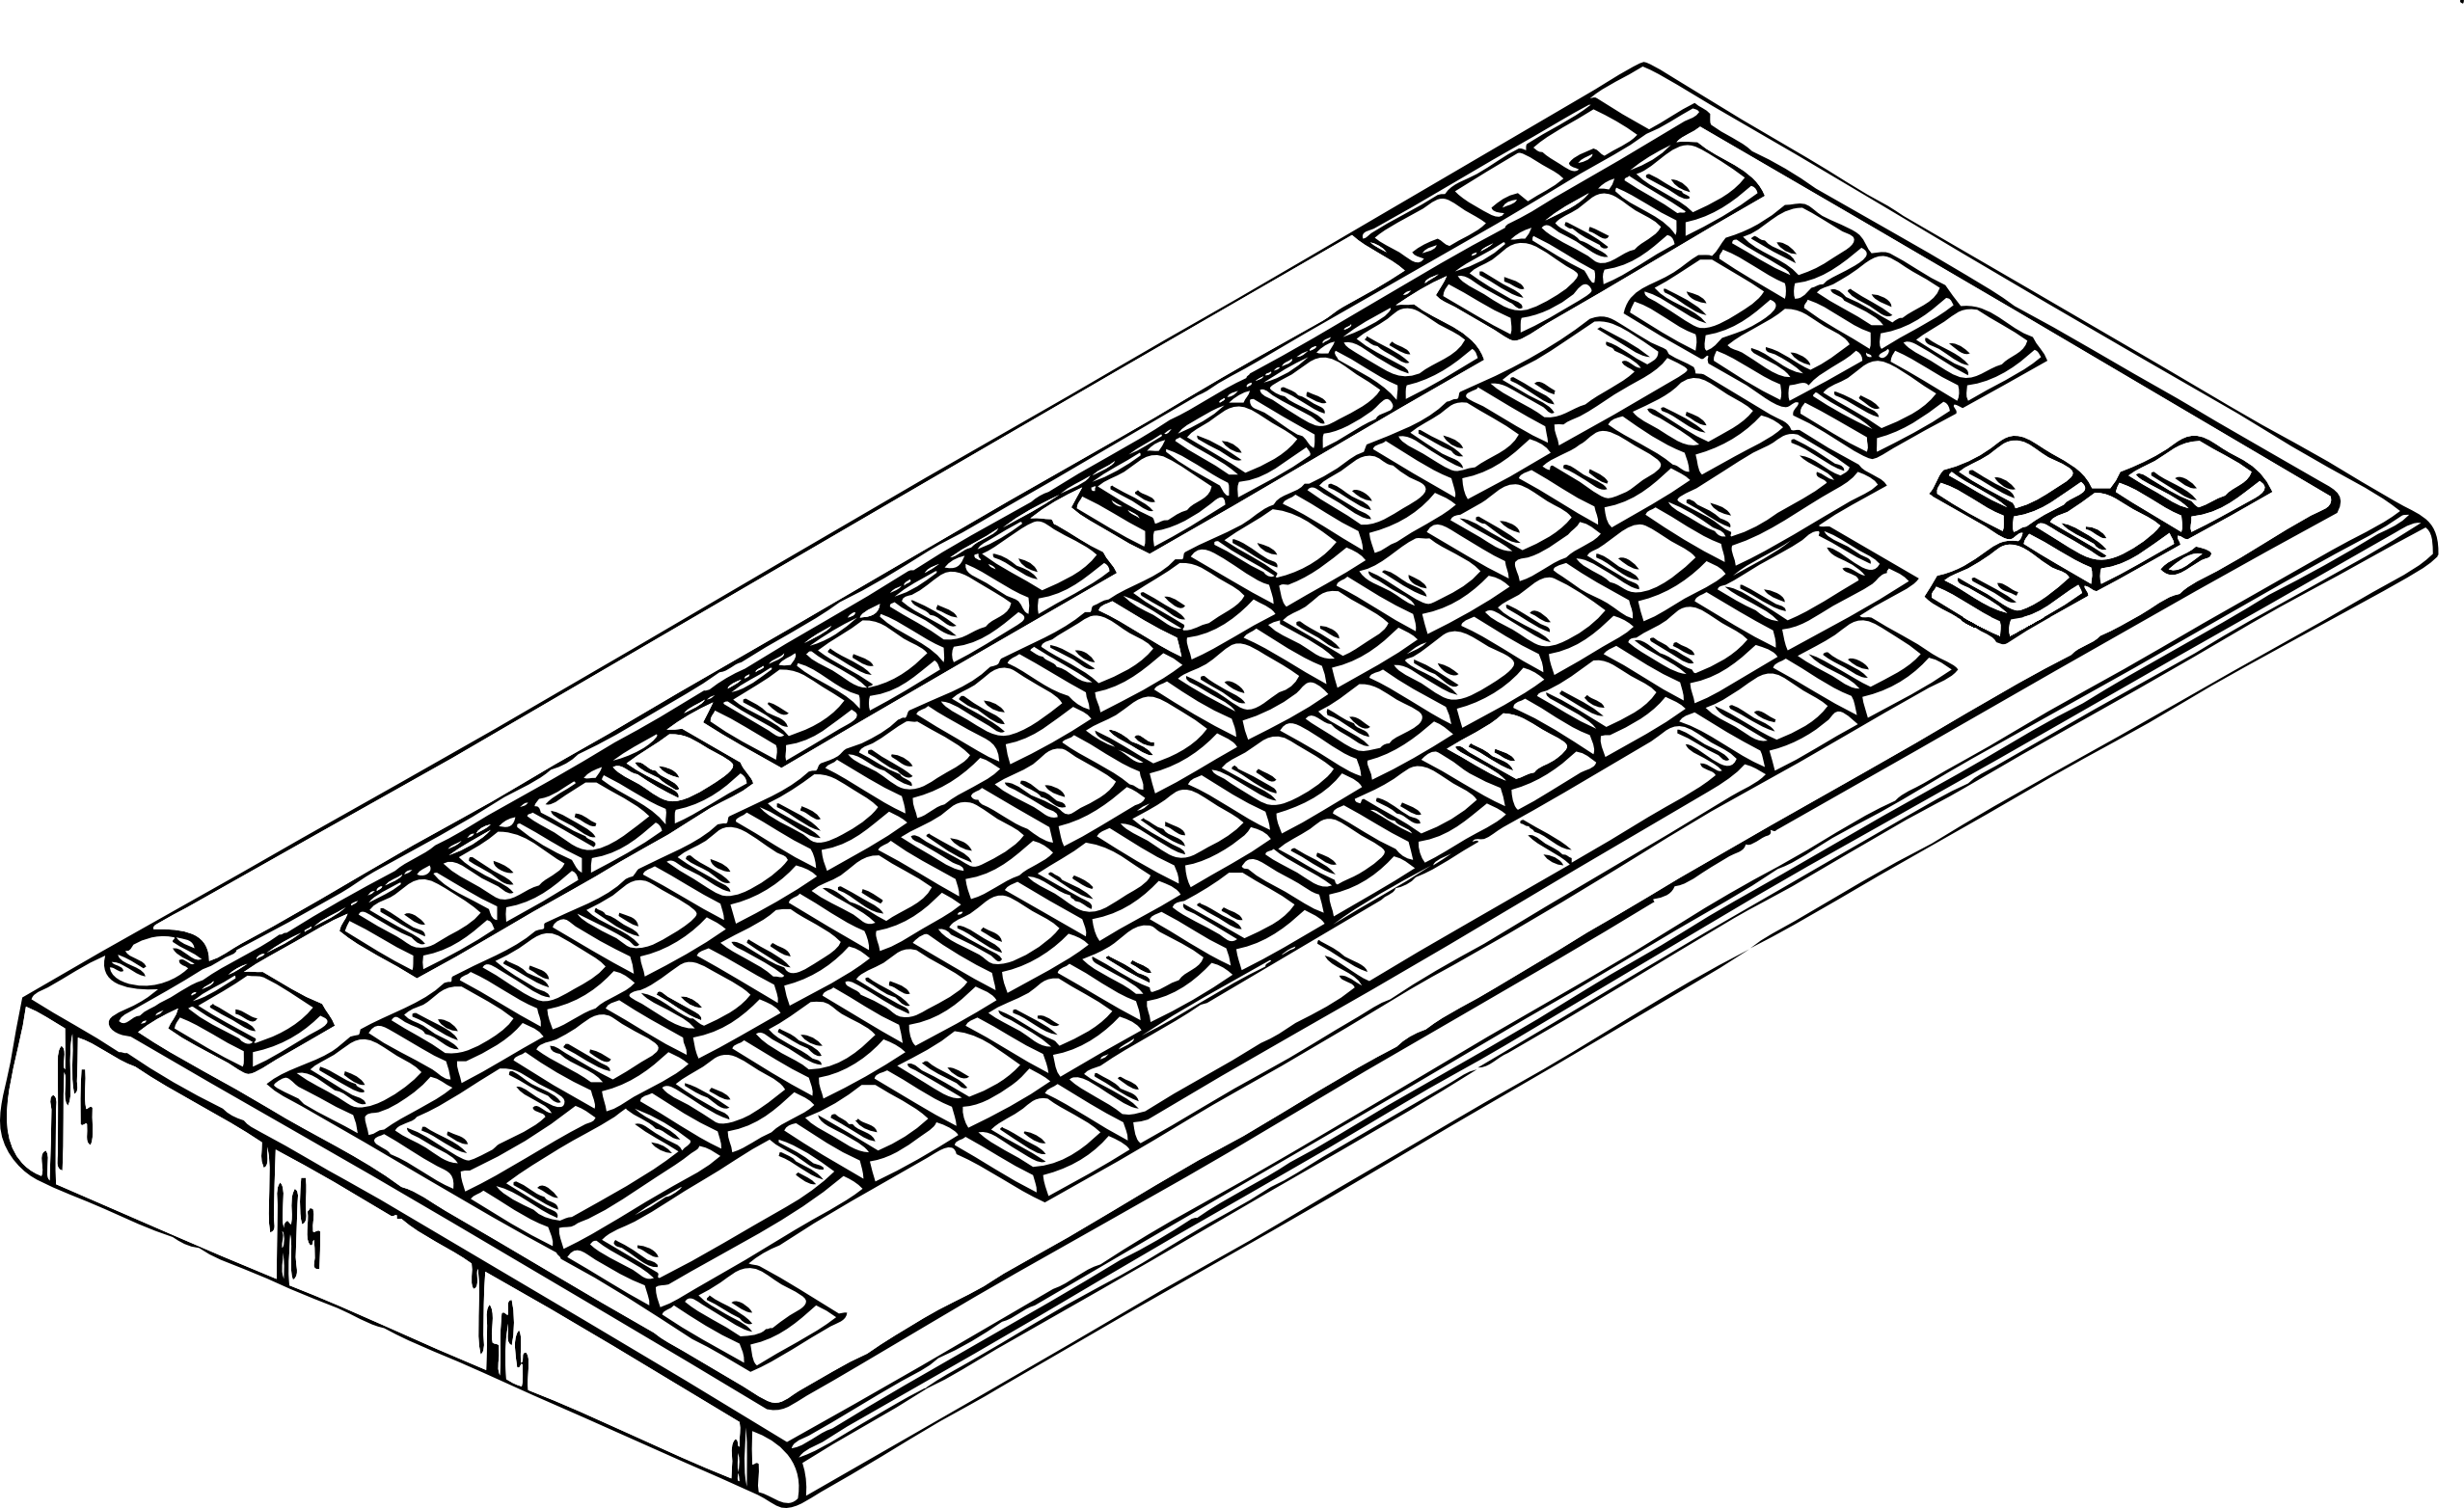 Mouse clipart computer keyboard #7